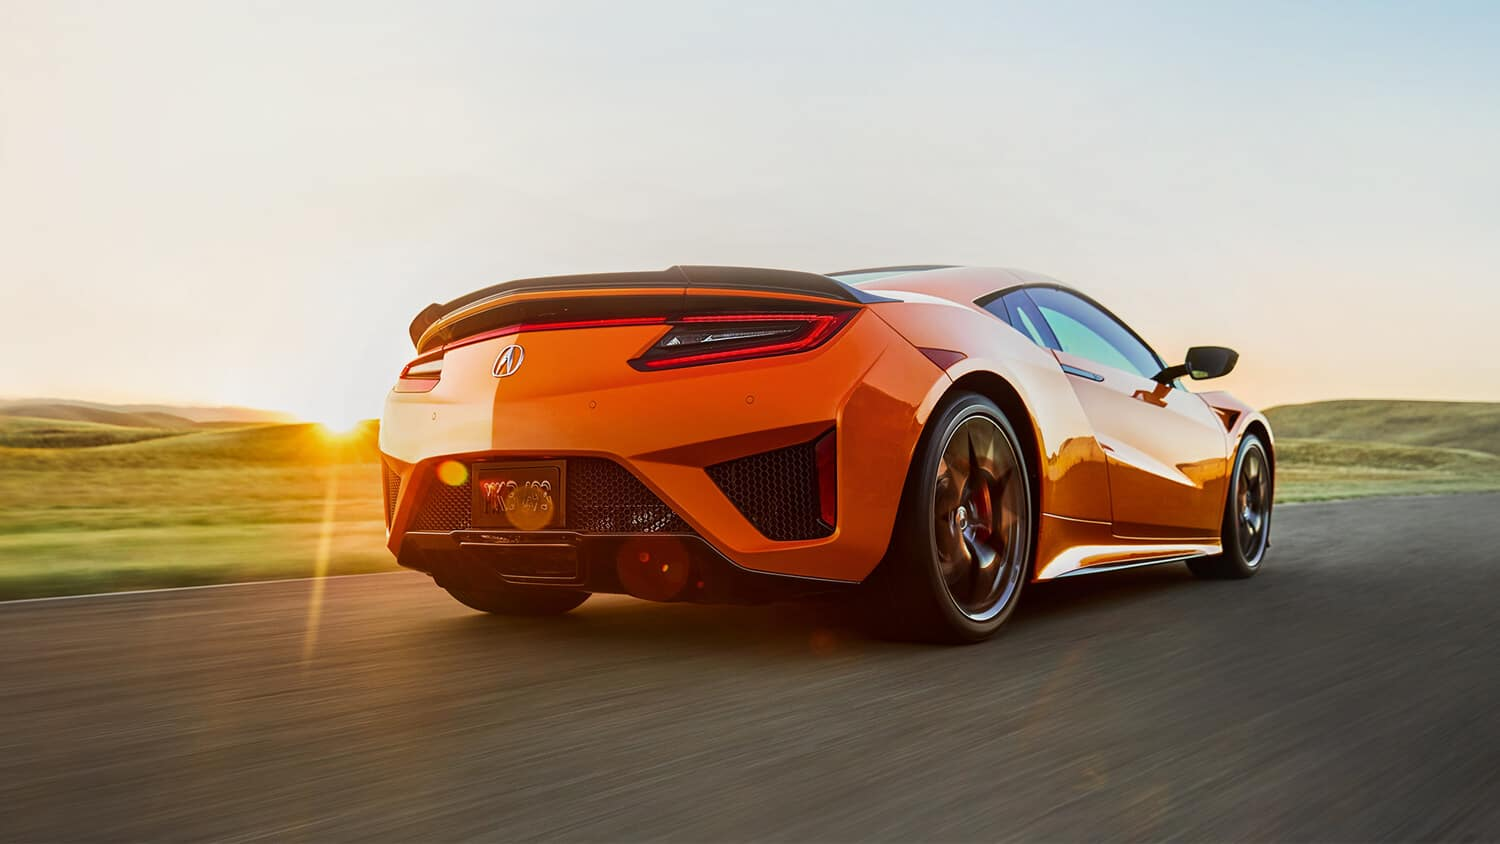 2019 Acura NSX Exterior Rear Angle Passenger Side Sunset